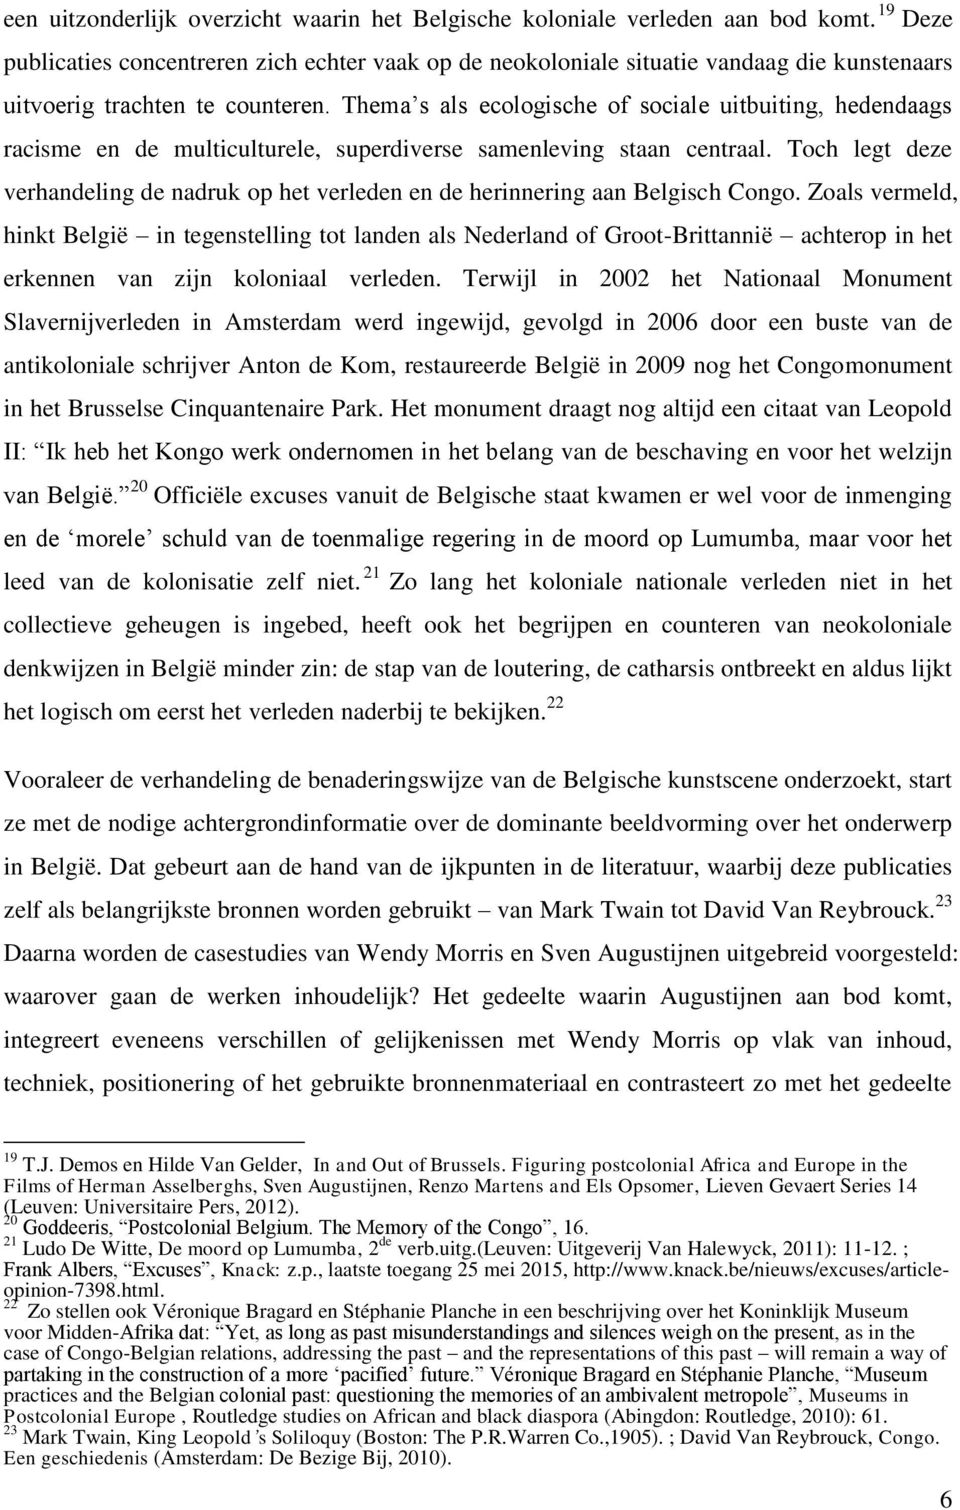 congo research paper